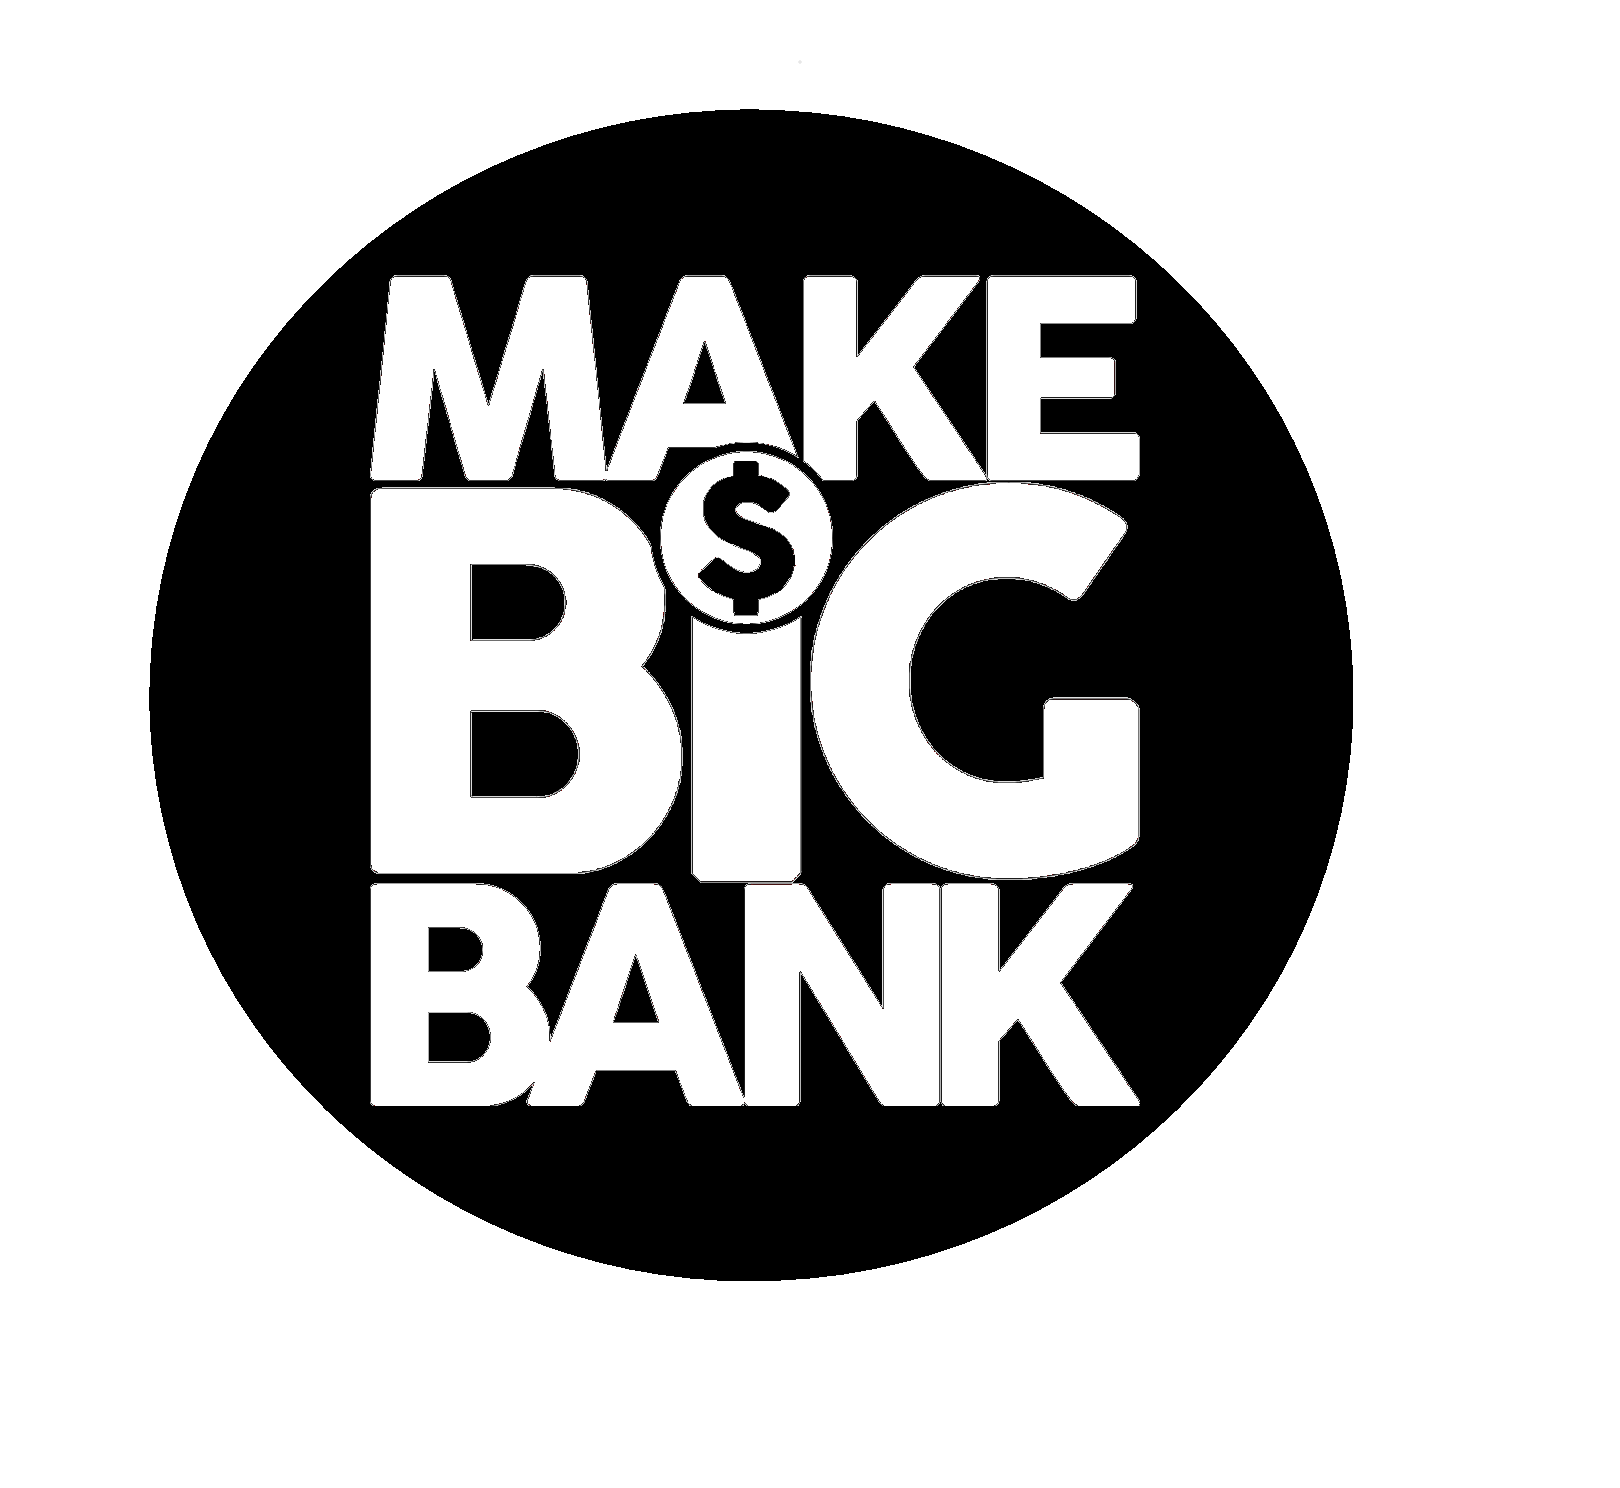 Make Big Bank